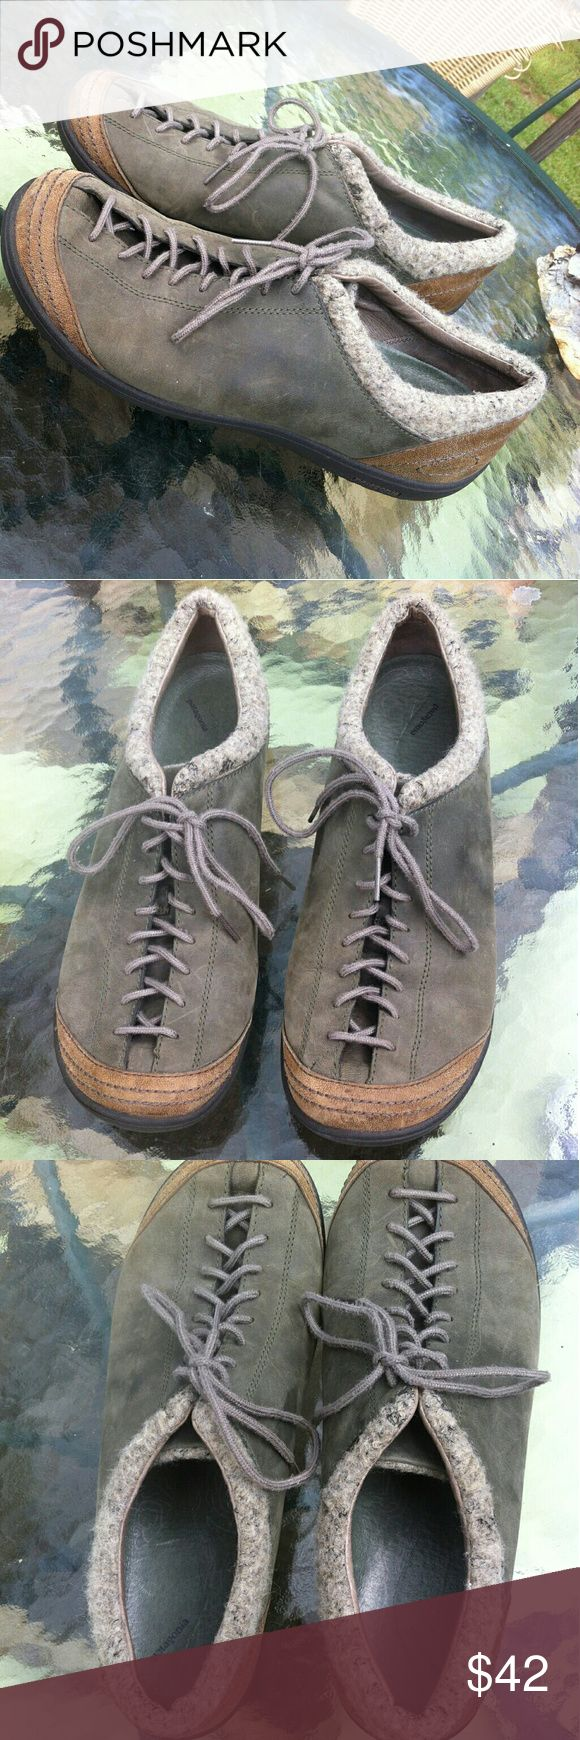 Patagonia Shoes Great condition Patagonia Shoes Athletic Shoes